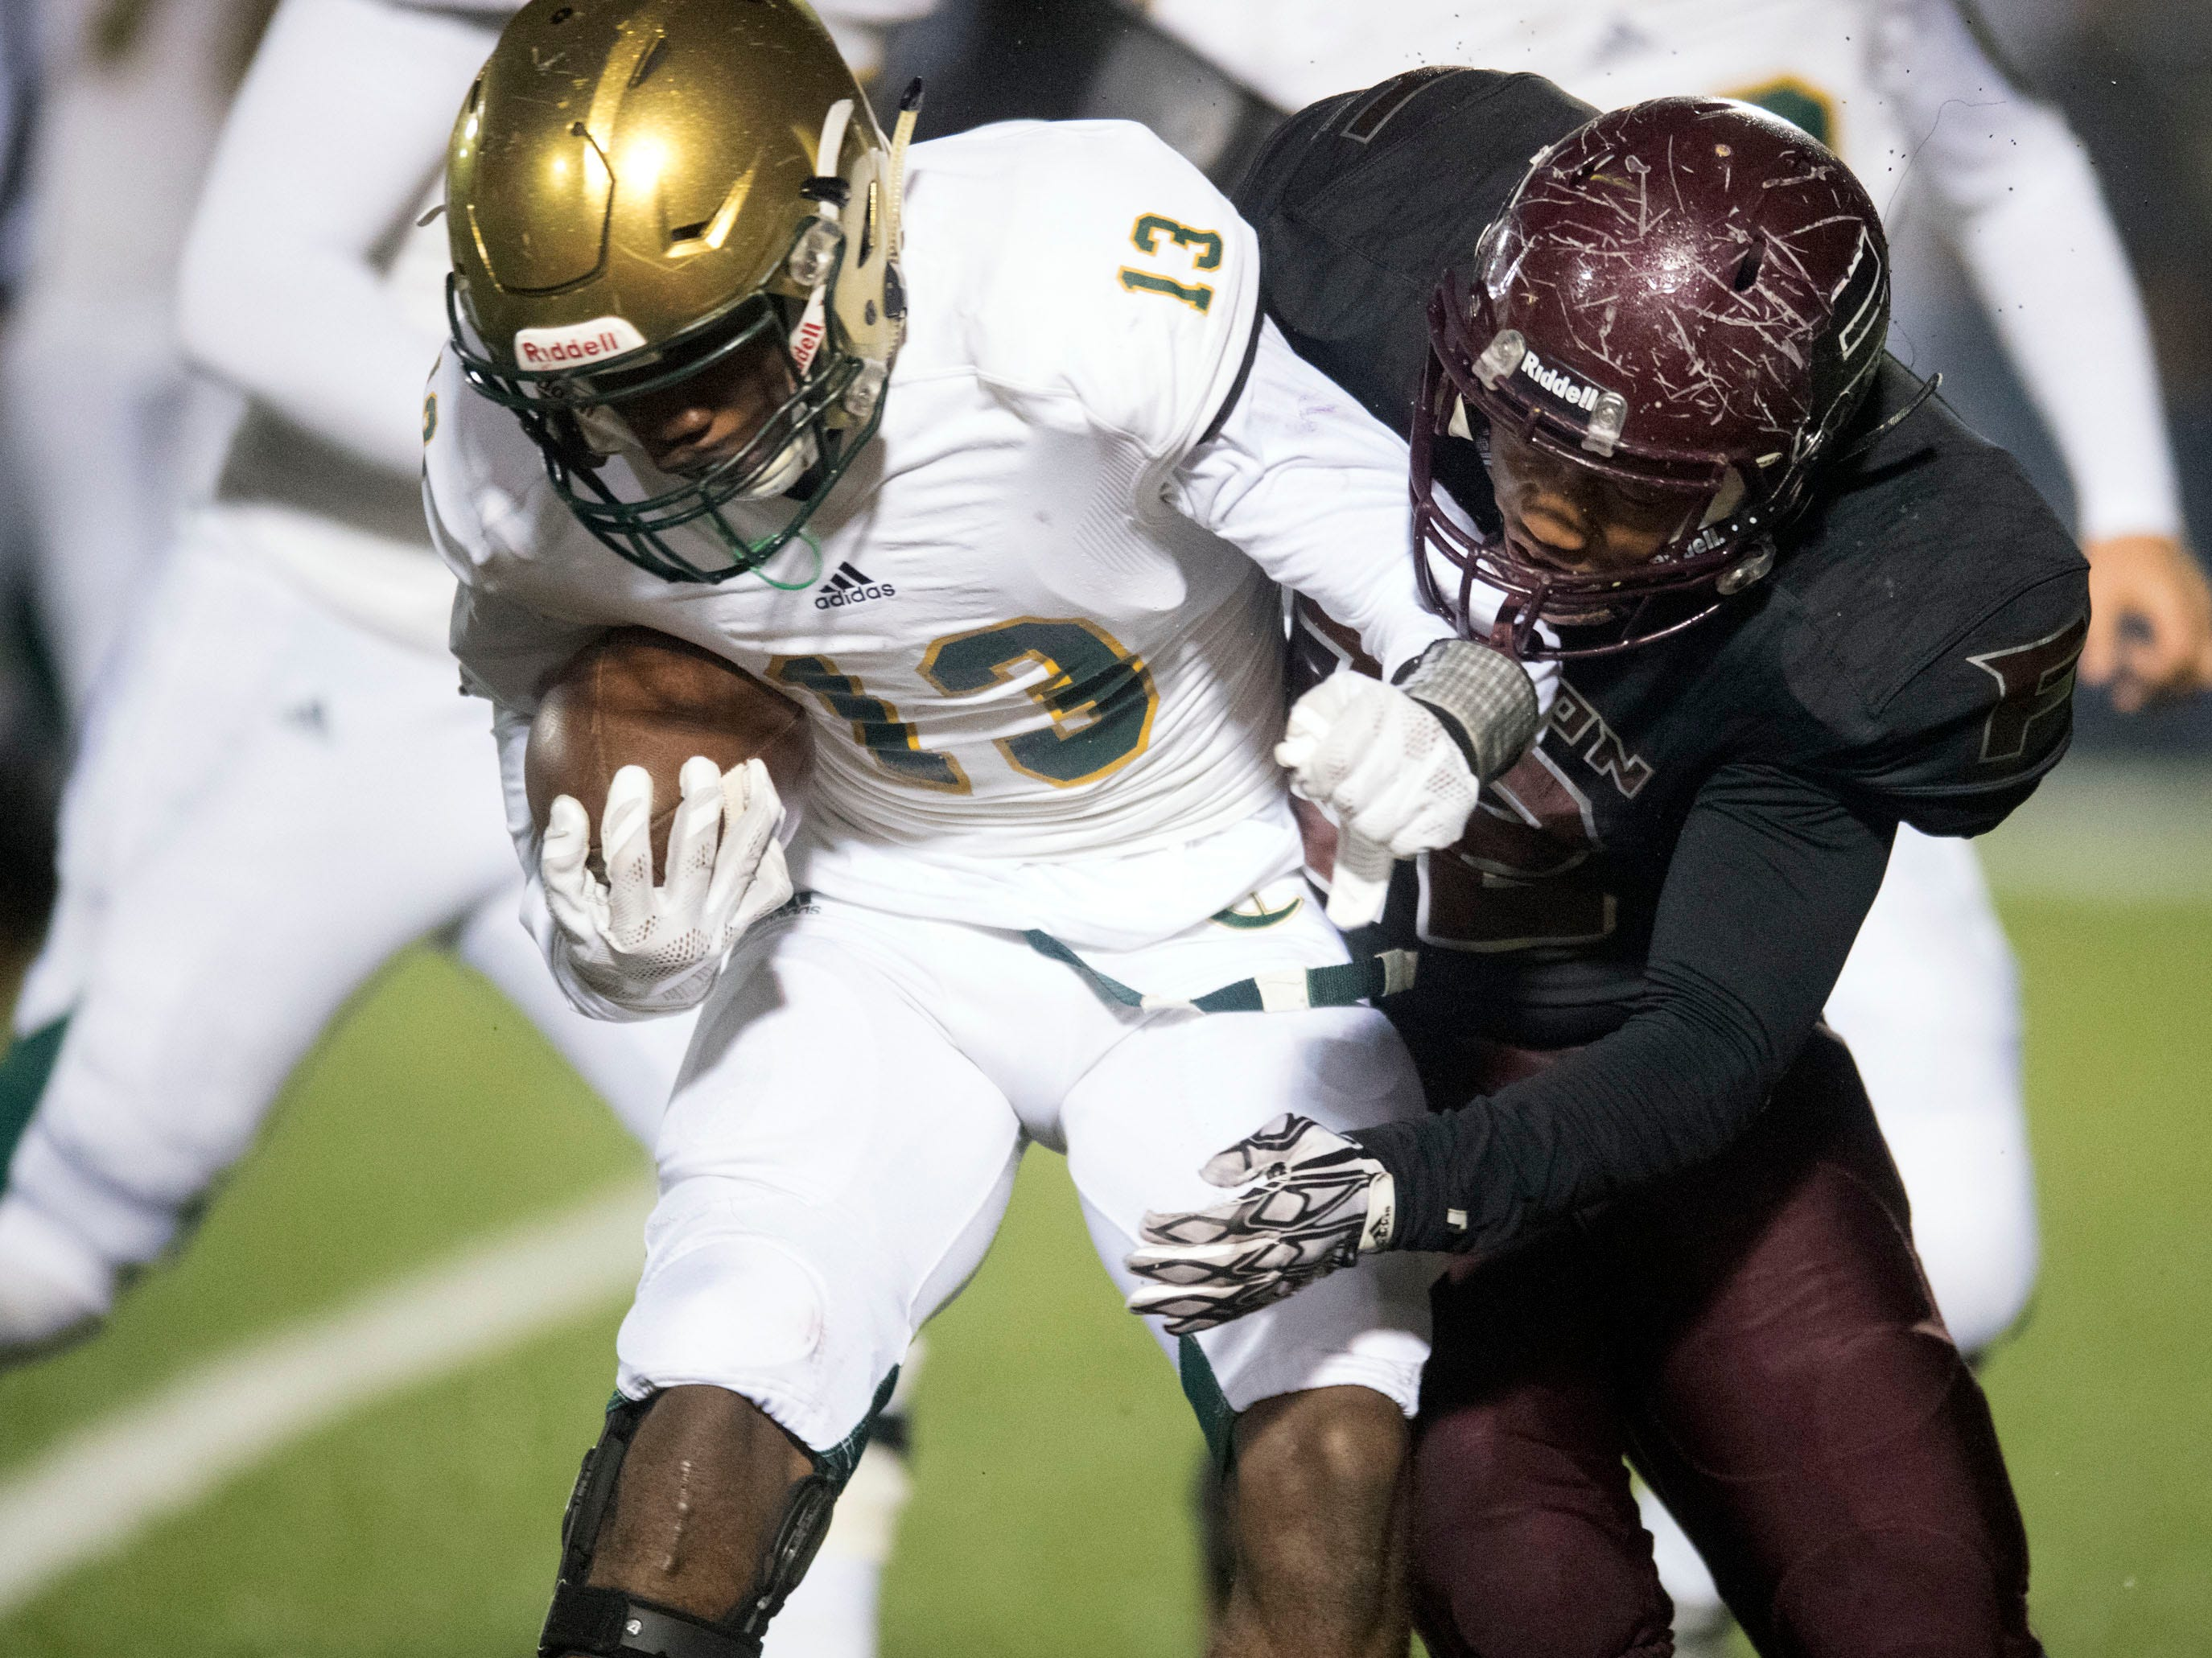 Knoxville Catholic's Ray Thompson (13) is stopped by Fulton's Terrence Brown (22). Knoxville Catholic beat Fulton, 28-25 in the second round of the Class 5A playoffs on Friday, November 9, 2018.